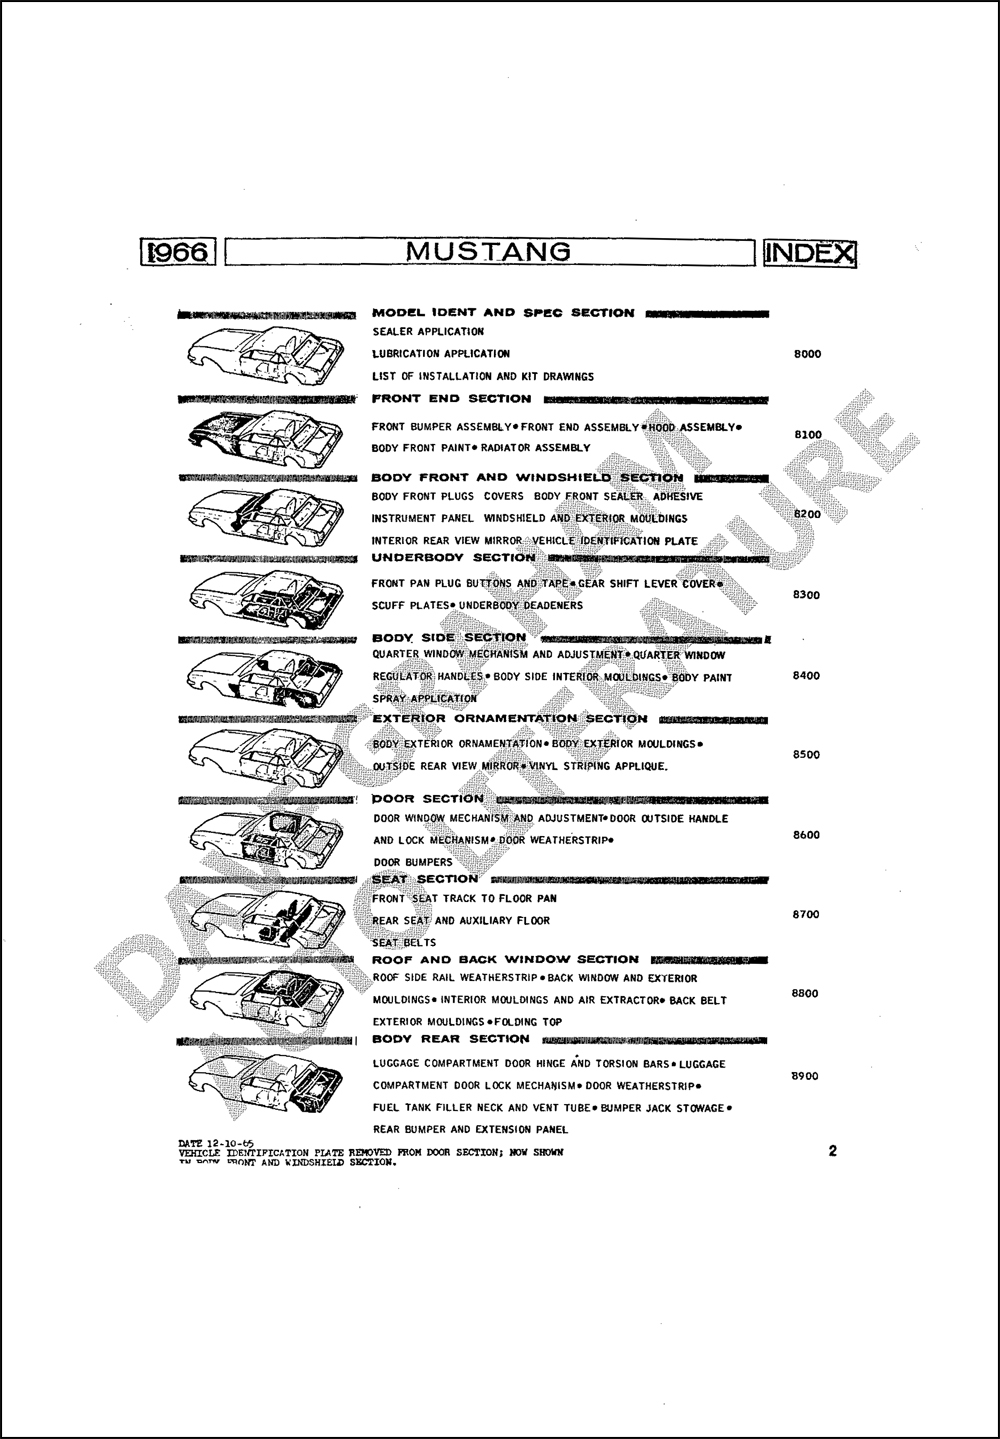 1966 Ford Mustang Assembly Manual Reprint set of 5 Books